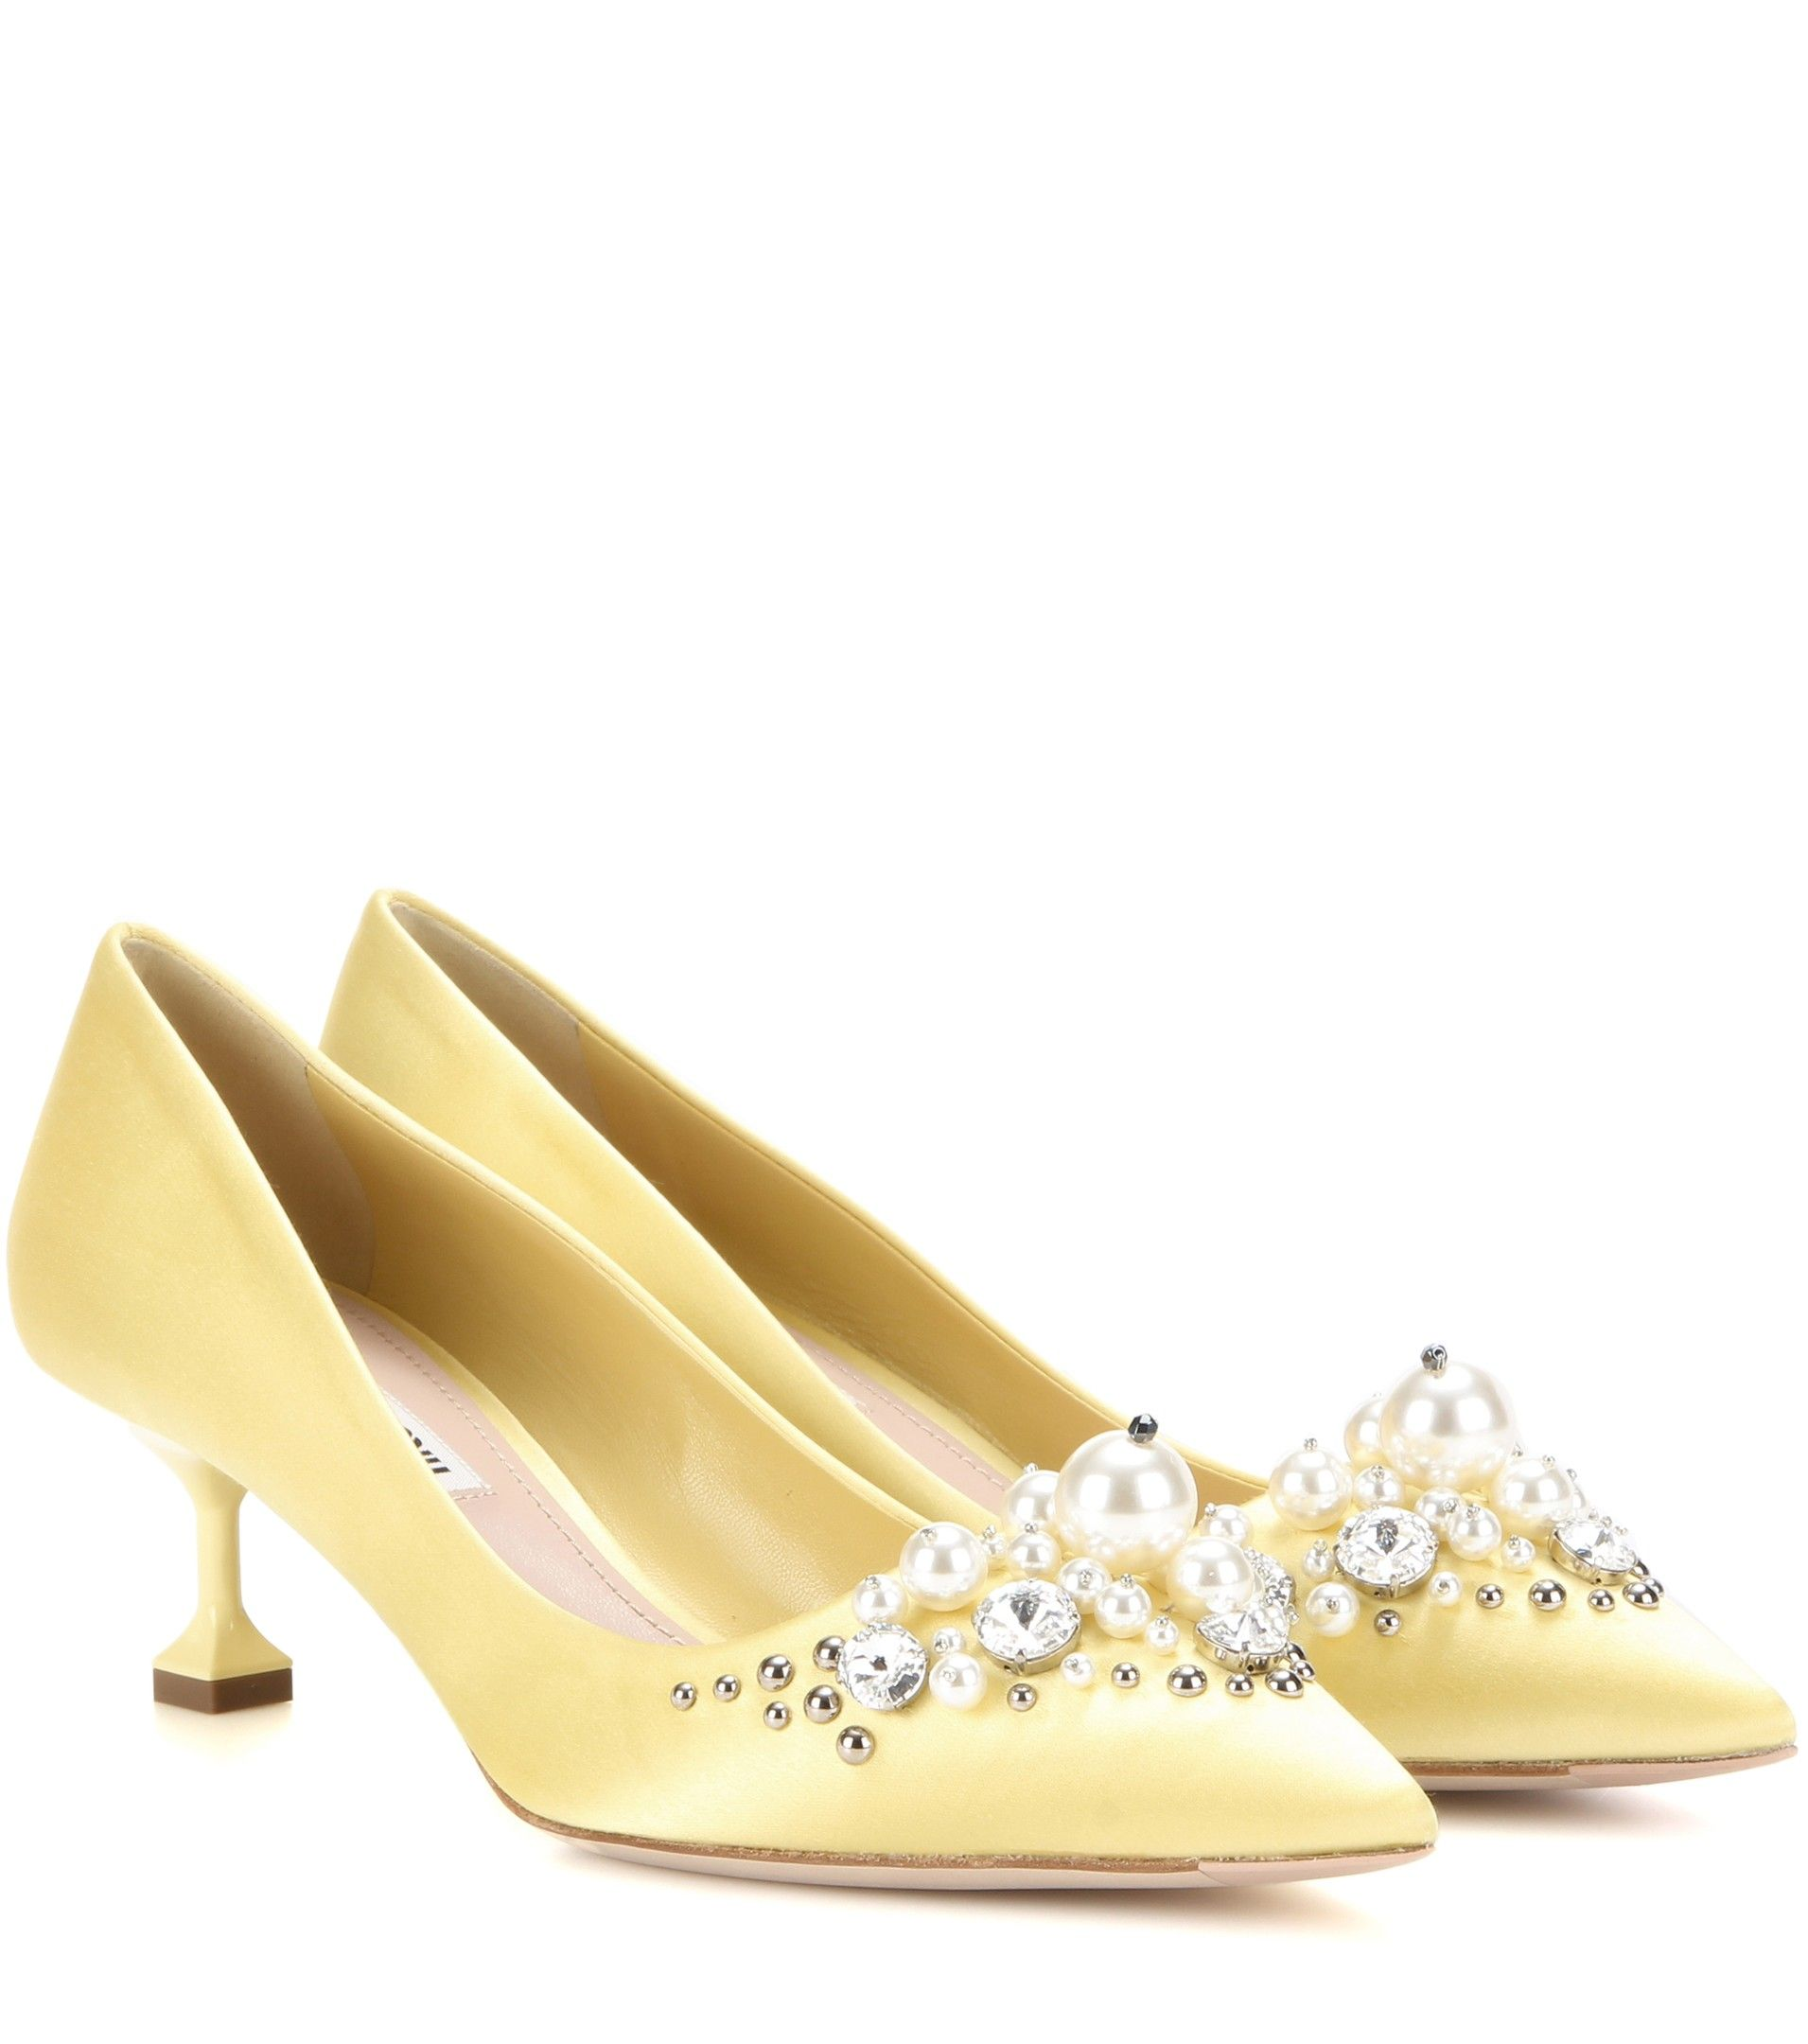 d6a1c1ef794 Miu Miu - Embellished satin pumps - The pale buttercup-yellow shade and  kitten-heel silhouette of Miu Miu s pointed pumps is endearingly vintage